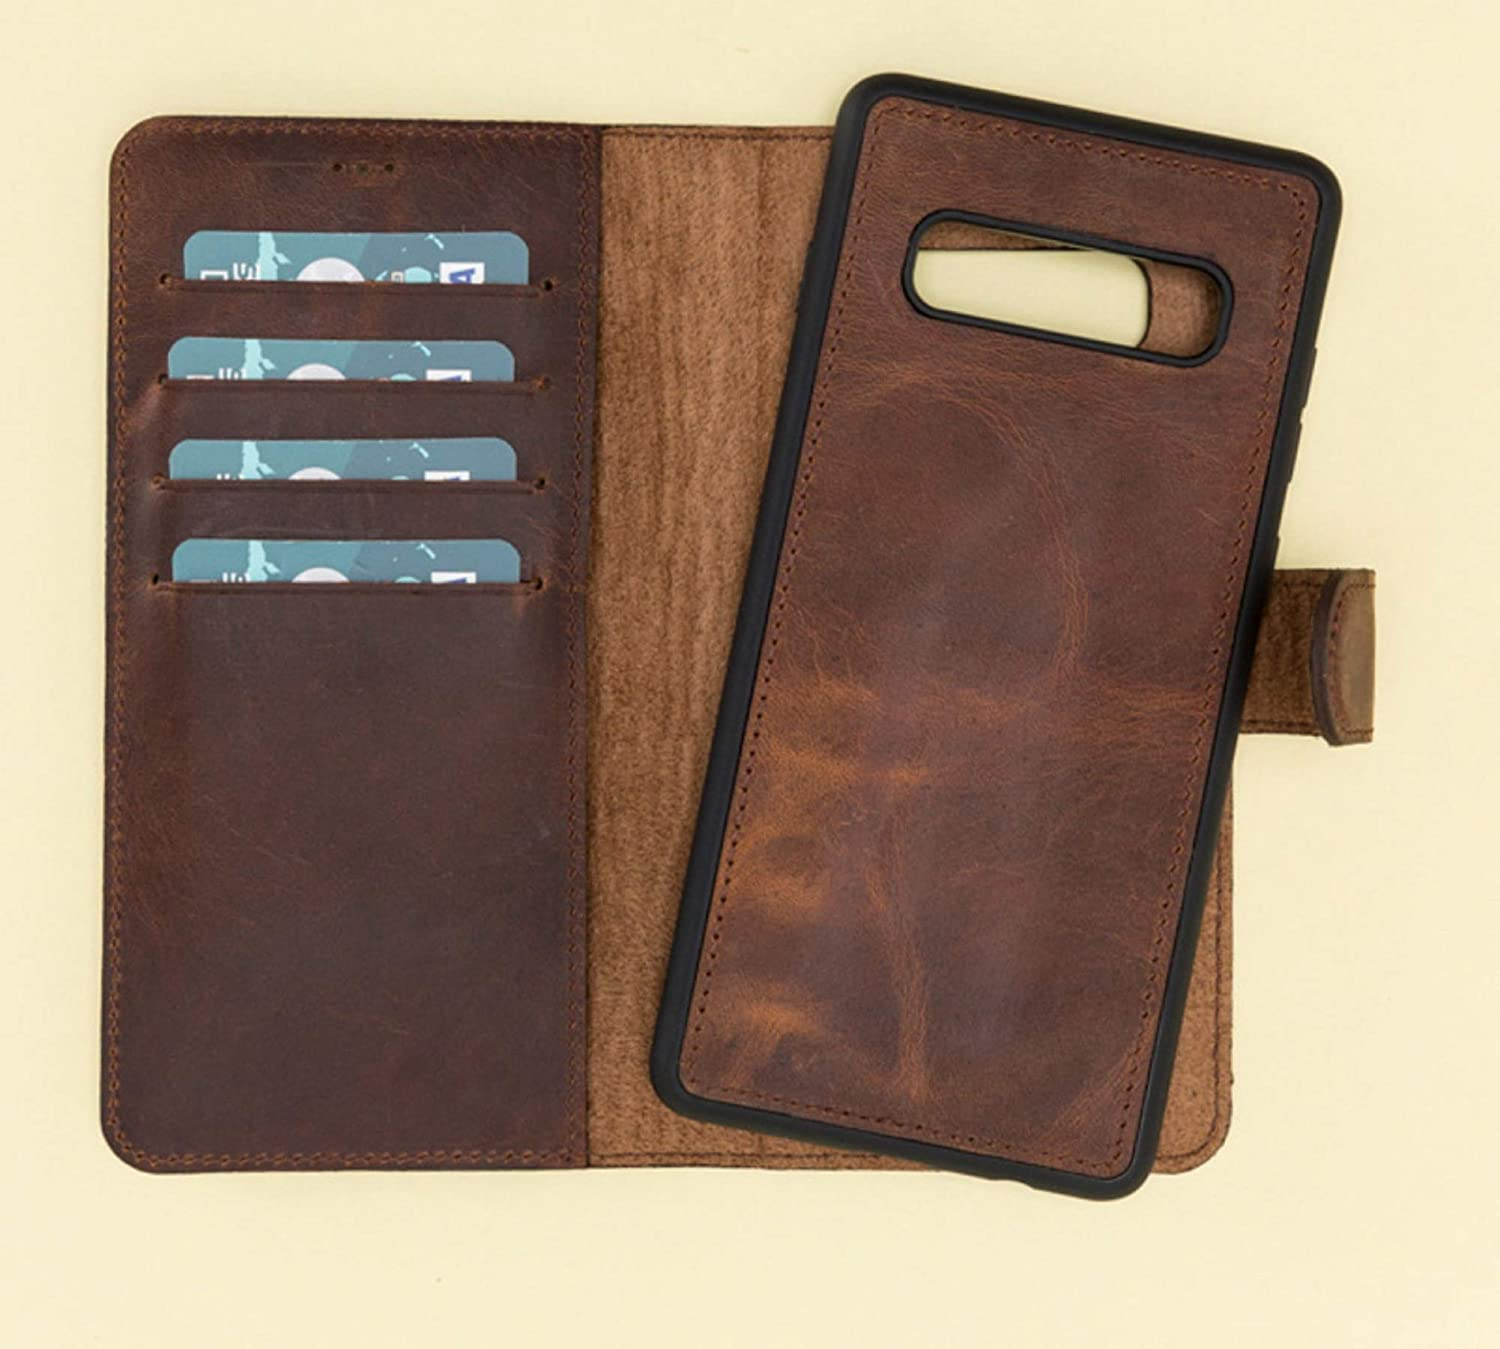 Personalized Leather Galaxy S10 plus case Wallet vintage rustic Genuine Leather cases for Galaxy Smart Phone